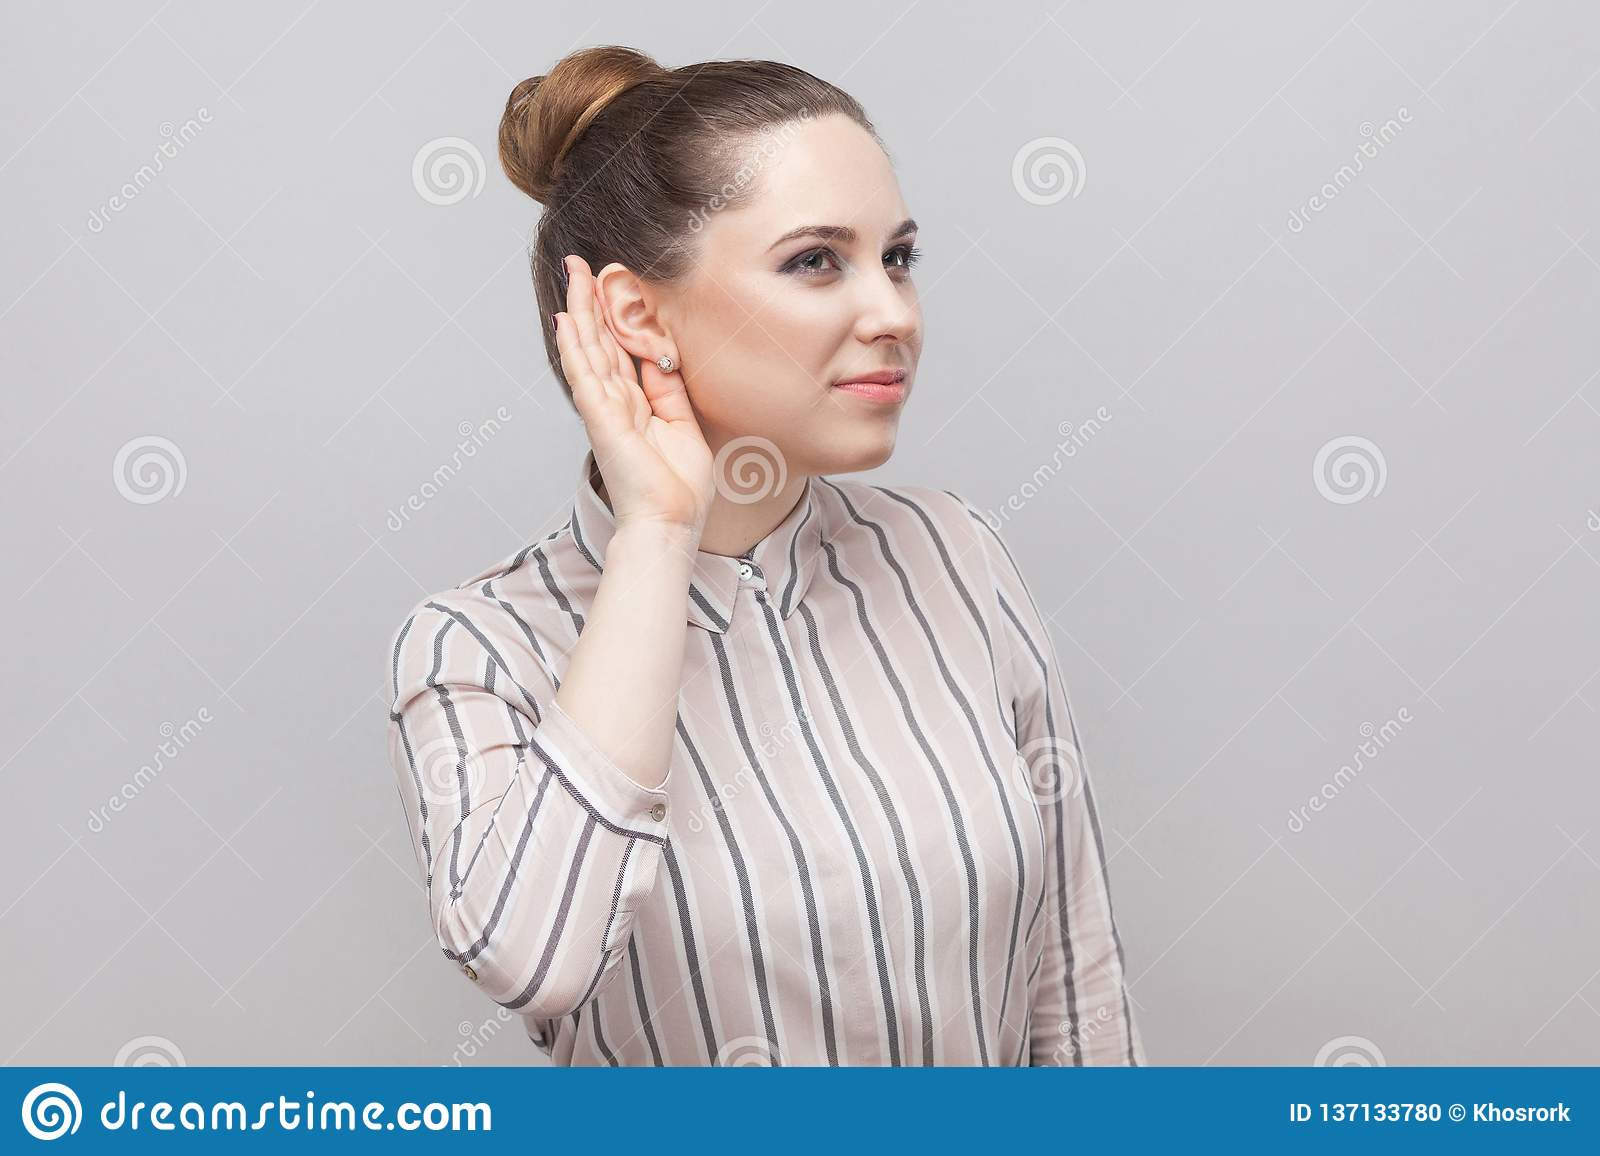 Closeup portrait of funny beautiful young woman in striped shirt and brown collected ban hairstyle, standing with hand near ear